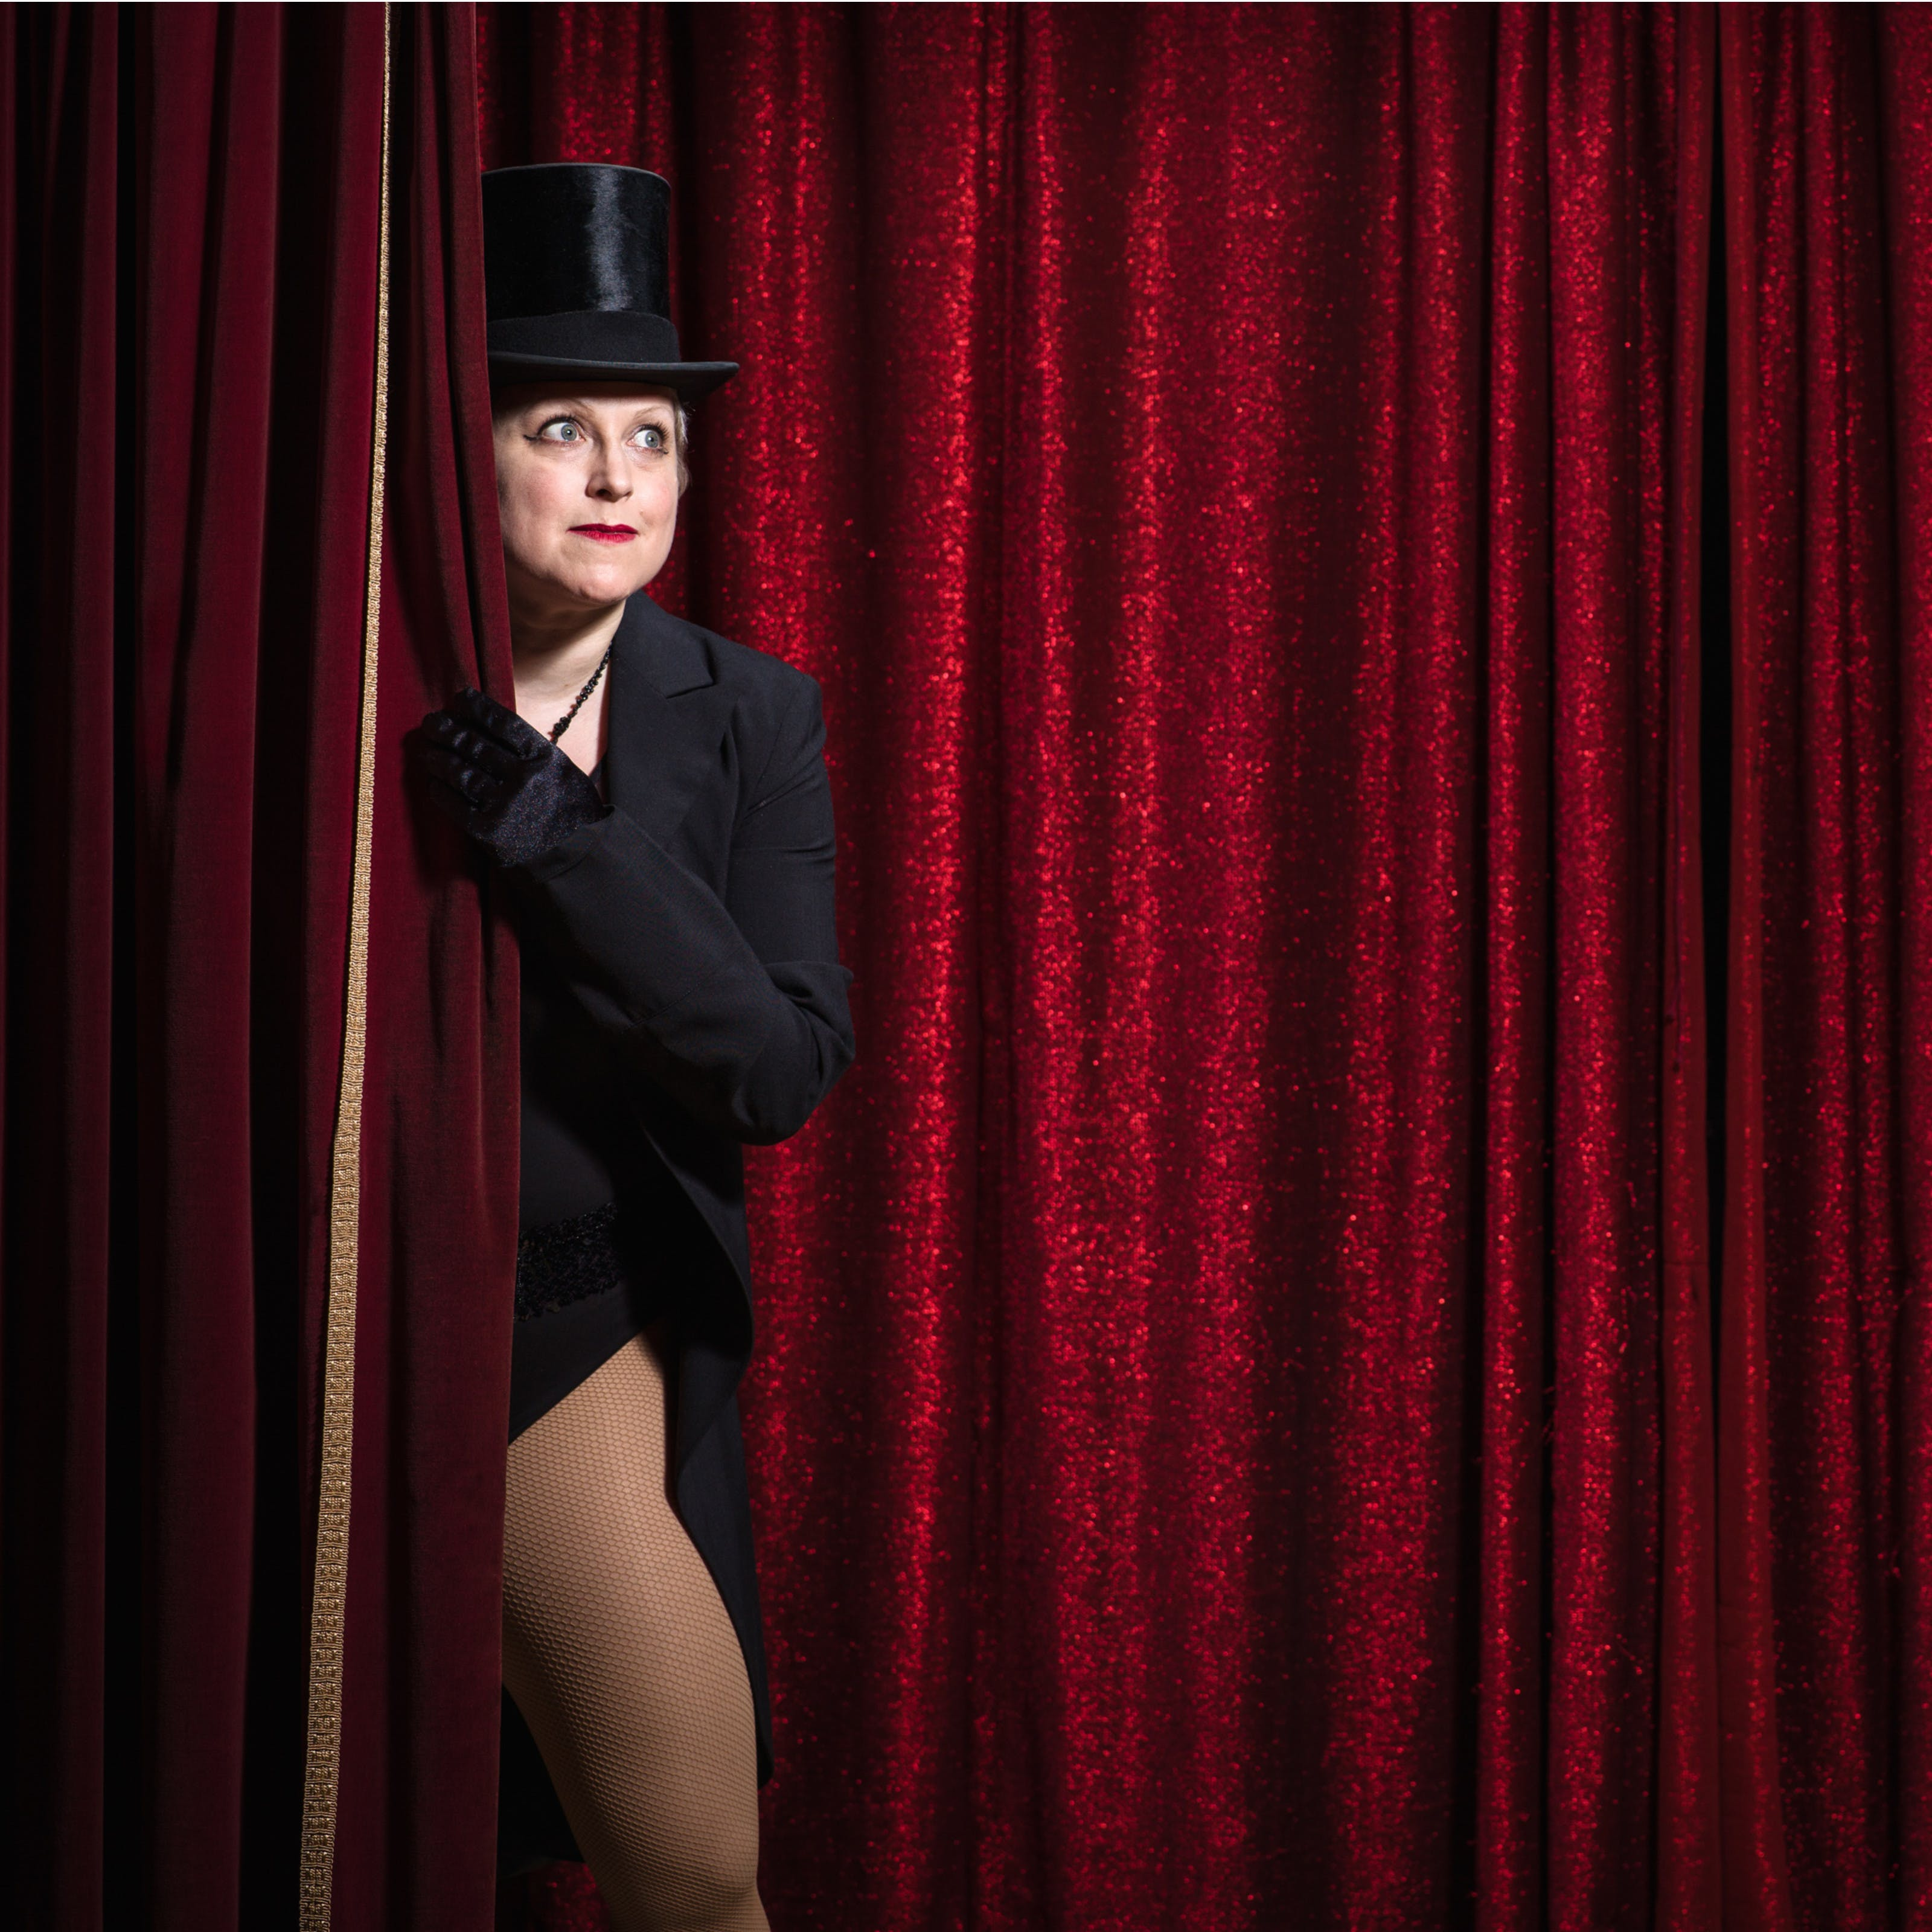 Photograph of a woman dressed in a top hat and tails peeping around the red curtain on a theatre stage. Behind her is another glittering red curtain.